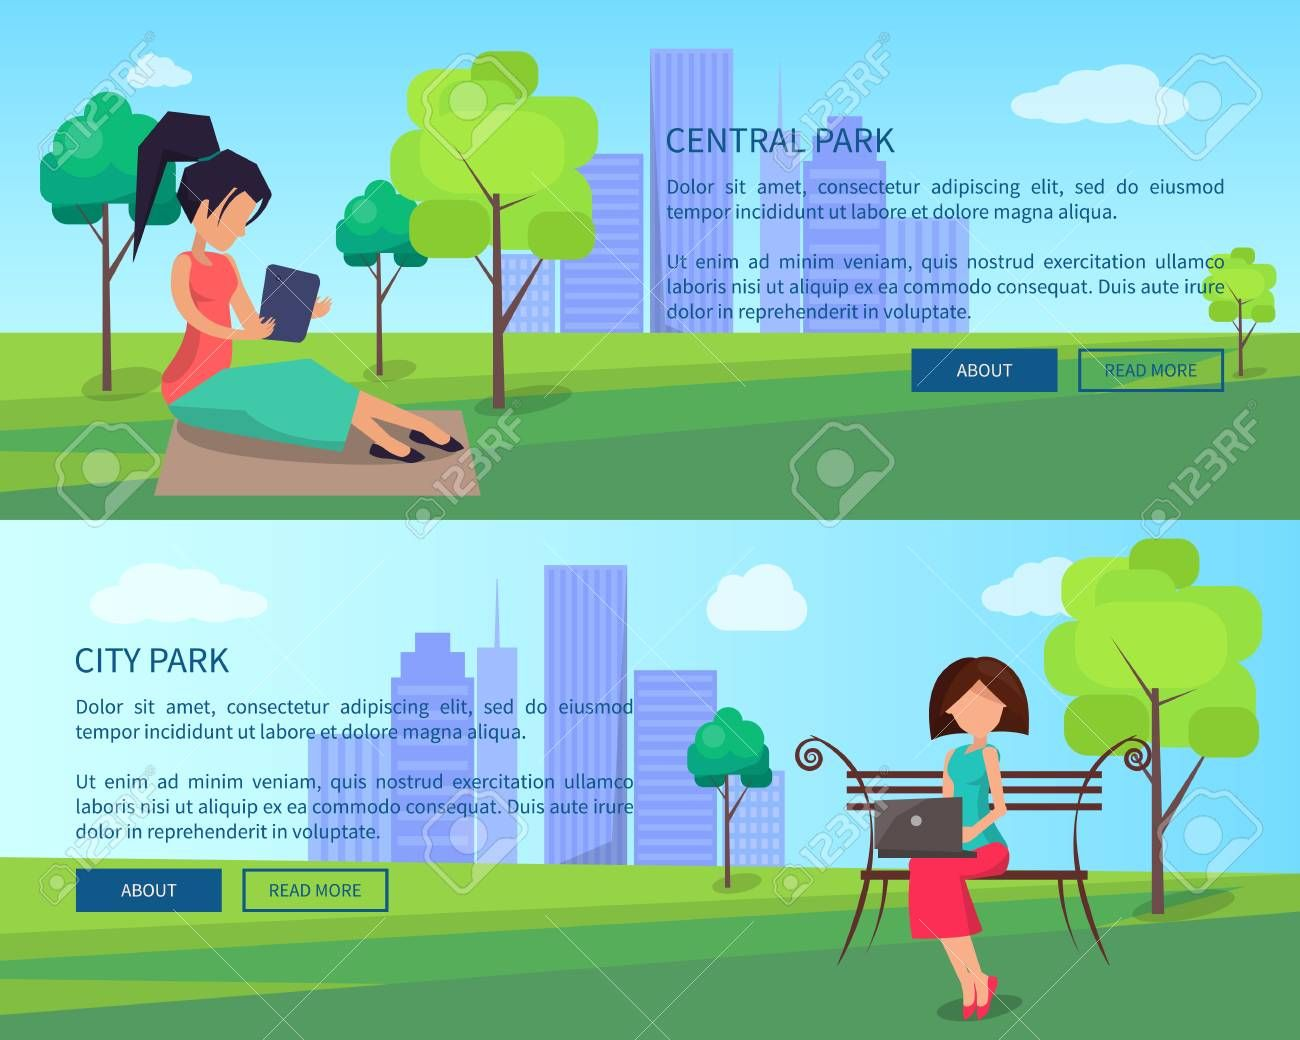 Central City Park Banners with People and Gadgets